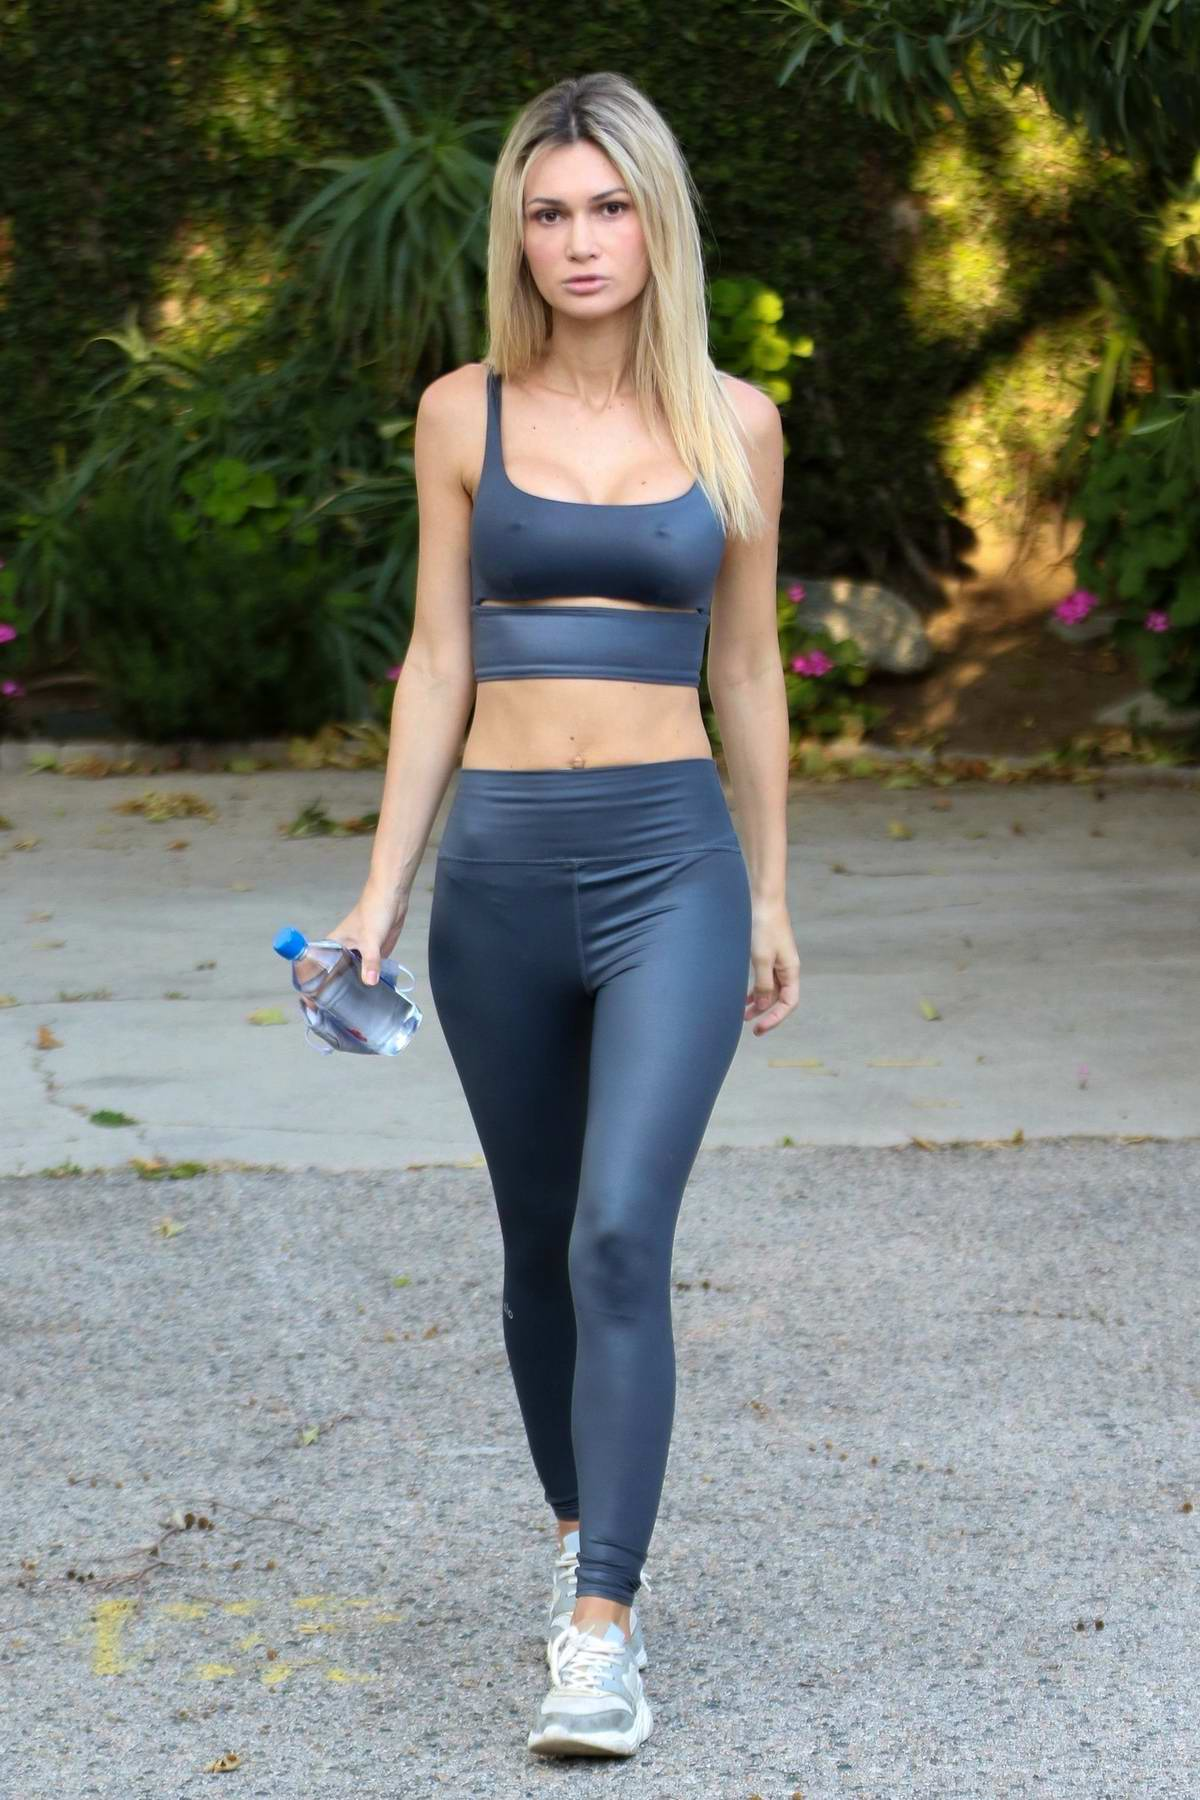 Ella Rose displays her slim figure in a crop top and leggings while out on a hike at Fryman Canyon in Studio City, California